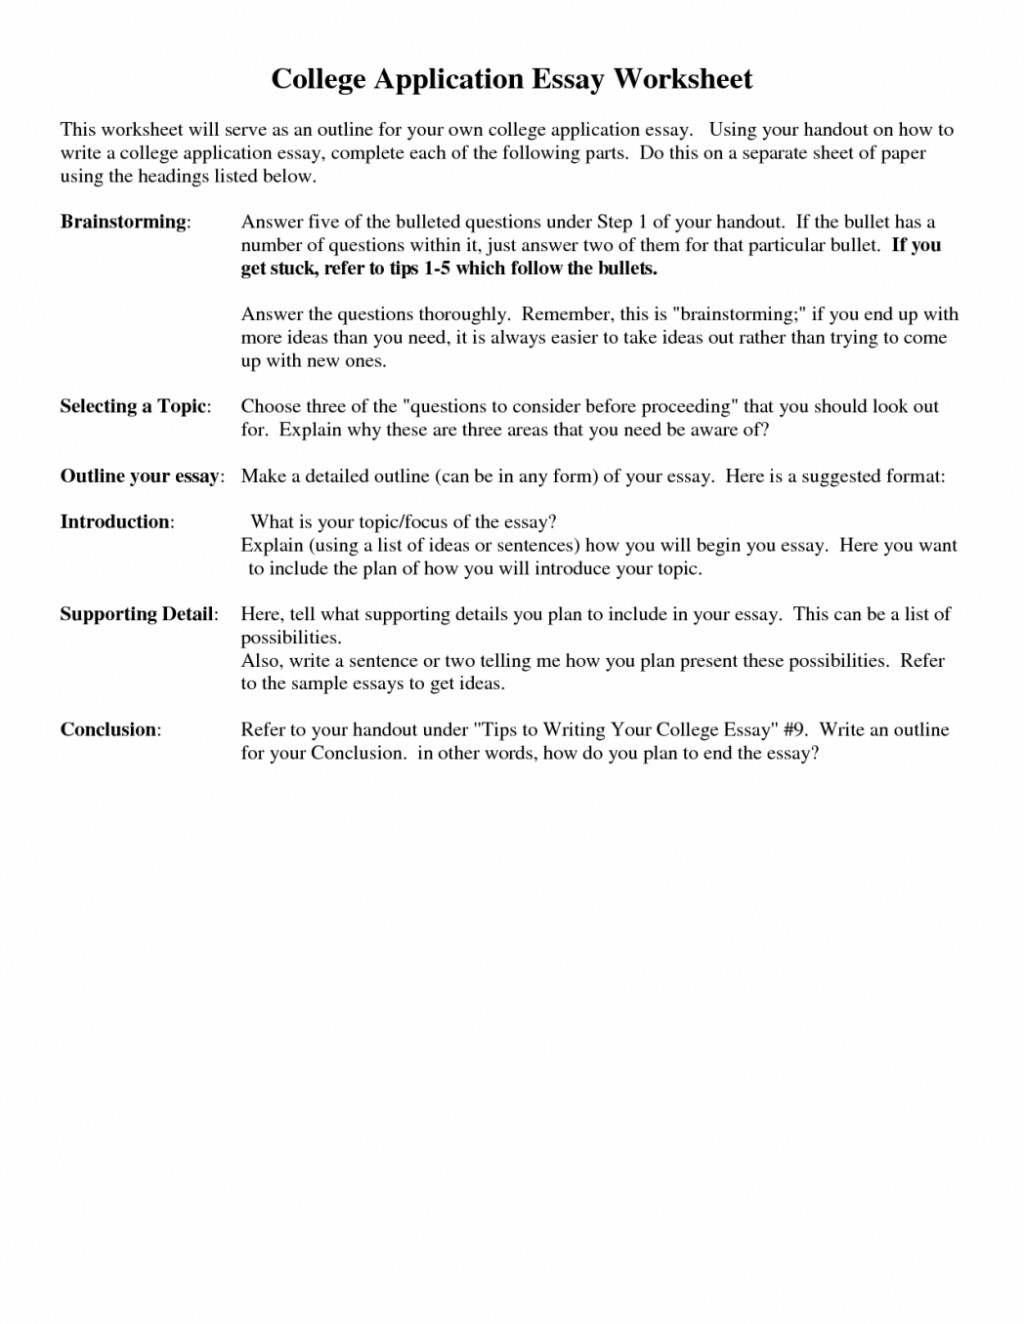 020 Essay Example What Is Hook In An Hooks Narrative Conclusion Of Good Persuasive College Application Outline 3 Howo Write For About Yourself Argumentative Analytical Top A The Crucible Odysseus Leadership Large